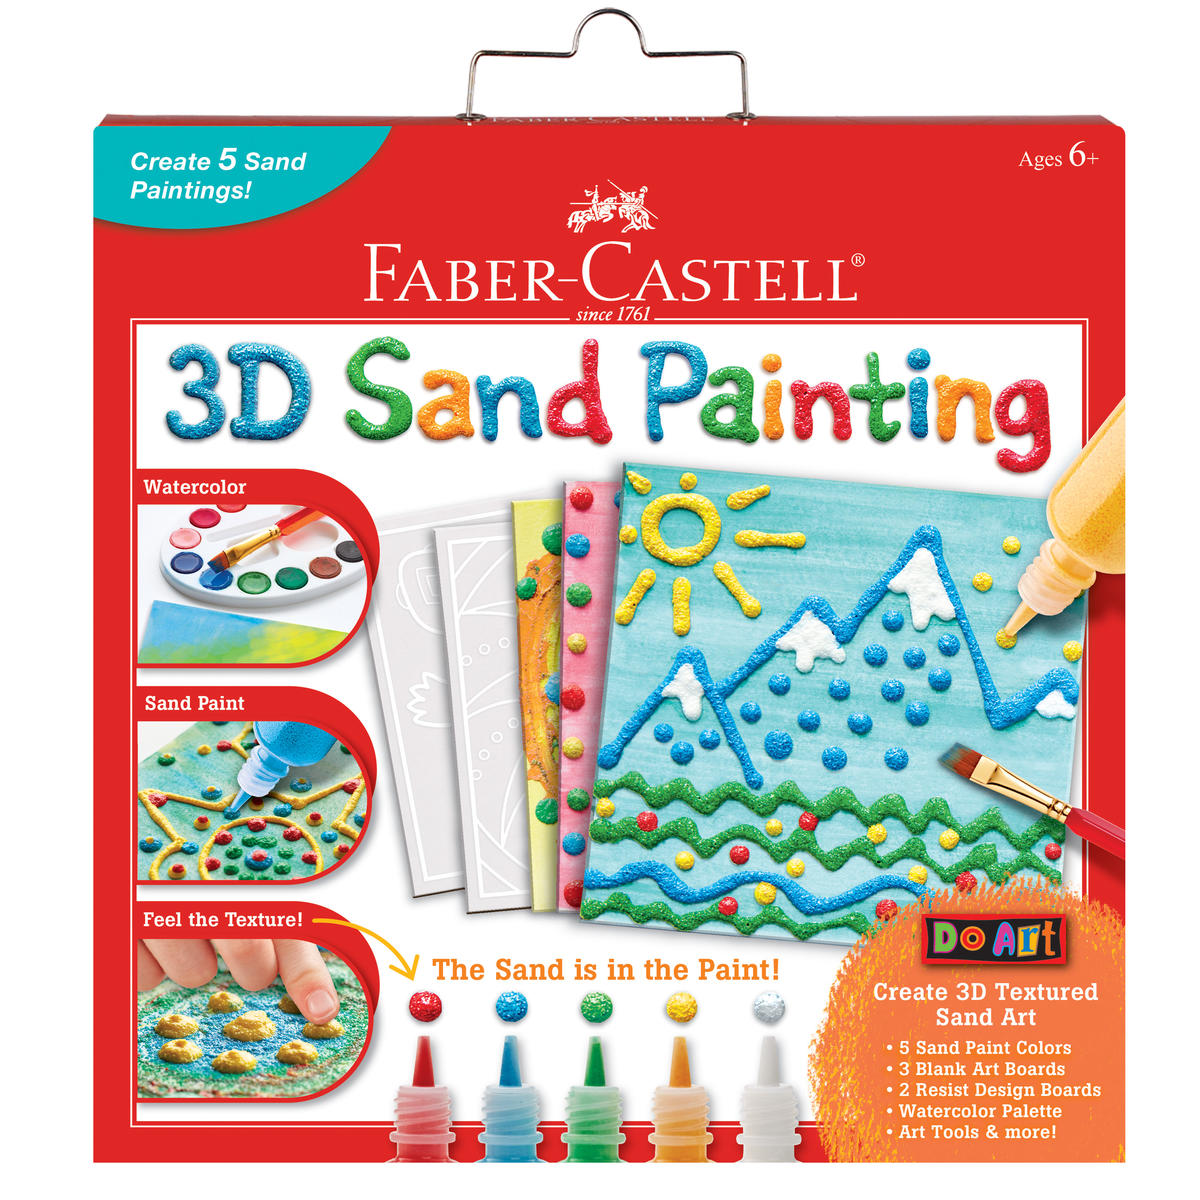 FF Toy Fair 2018 Faber-Castell Do Art 3D Sand Painting